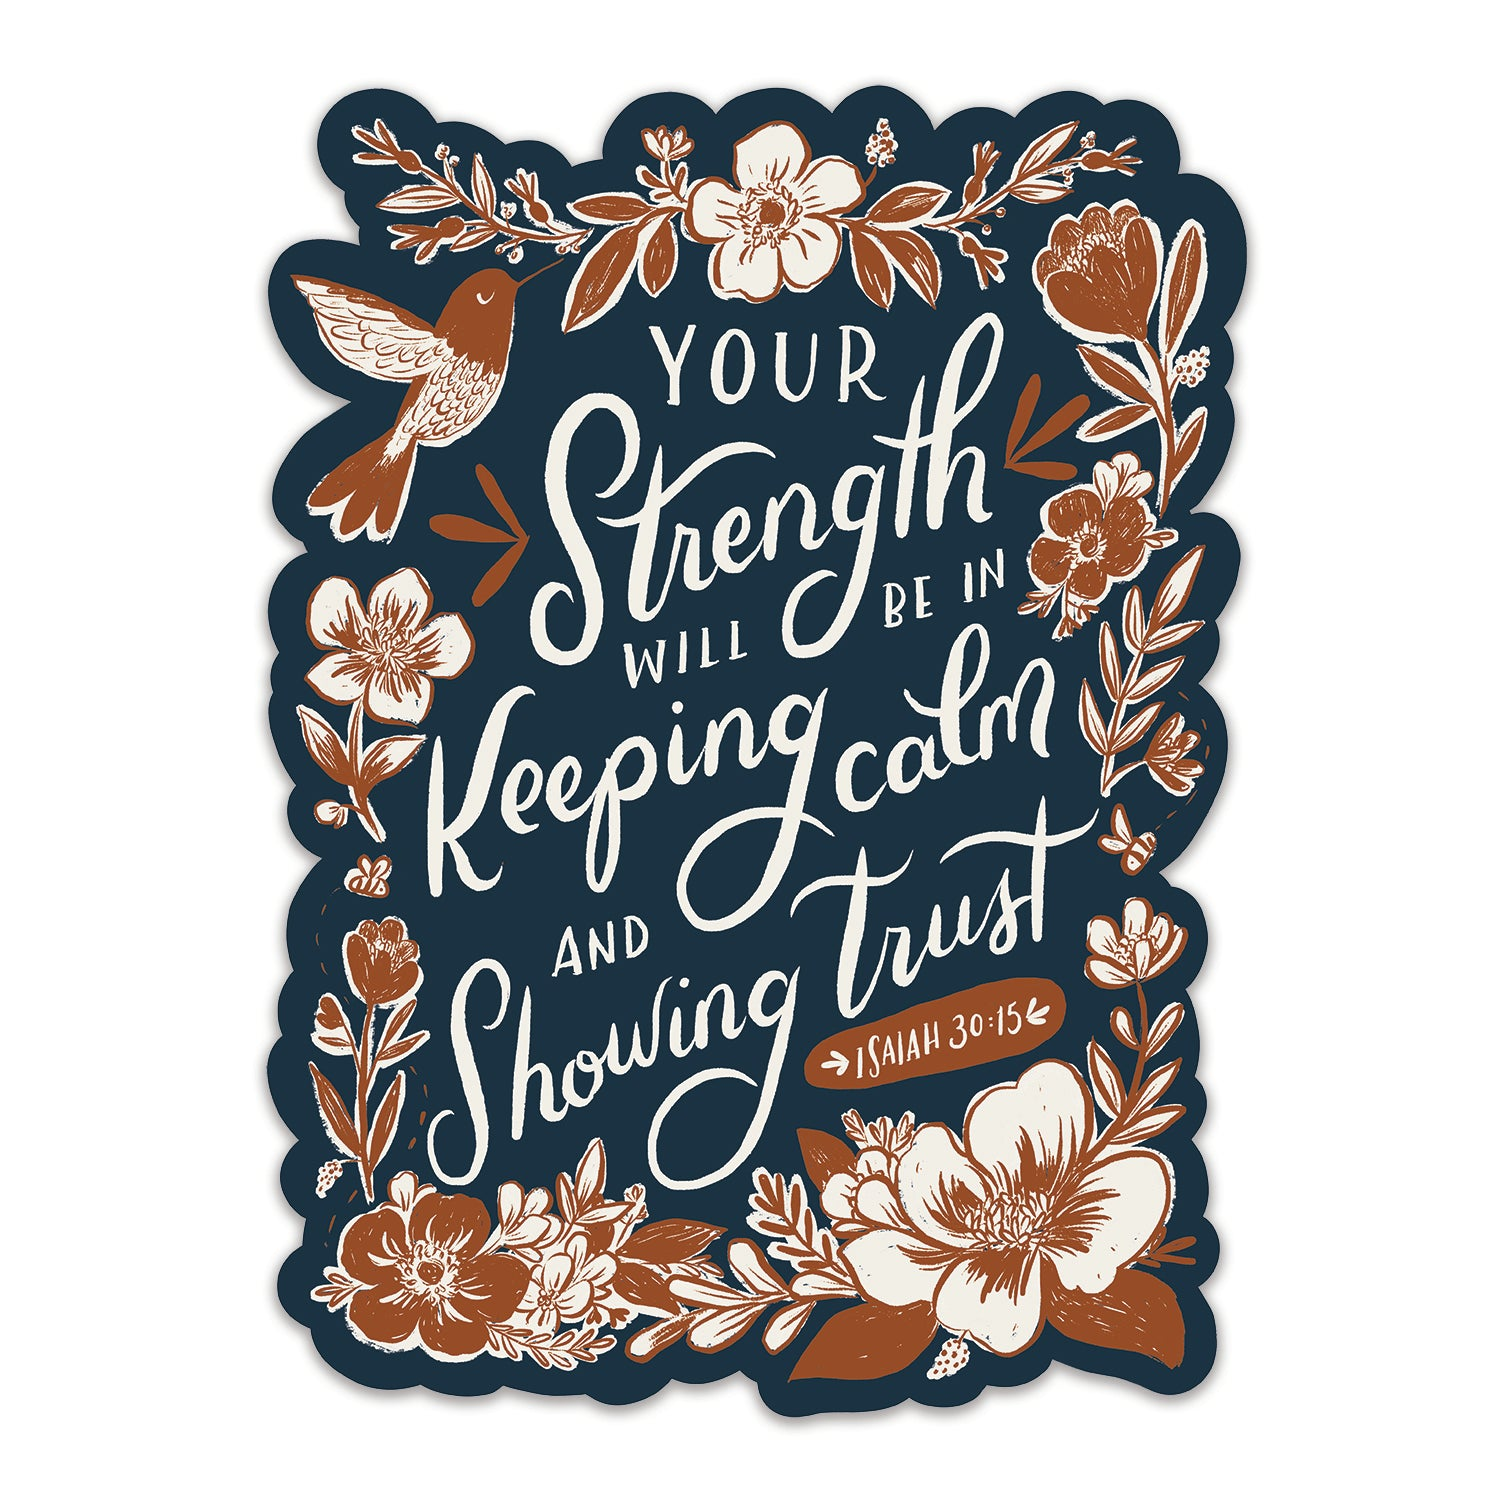 Vinyl Sticker - Your Strength Will Be in Keeping Calm and Showing Trust - Isaiah 30:15